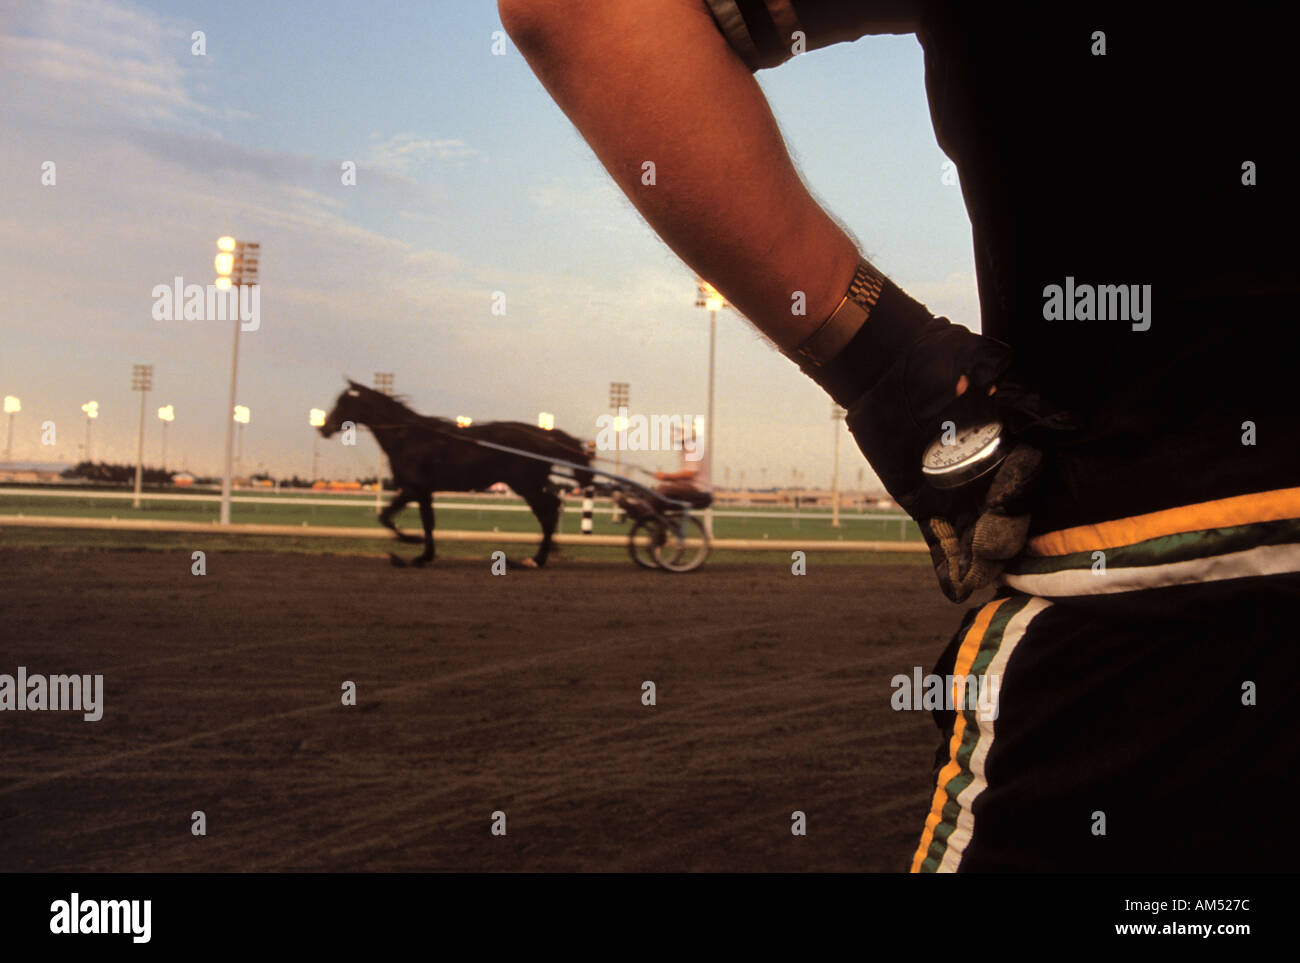 coach times a trotting race horse at the track with a stopwatch - Stock Image